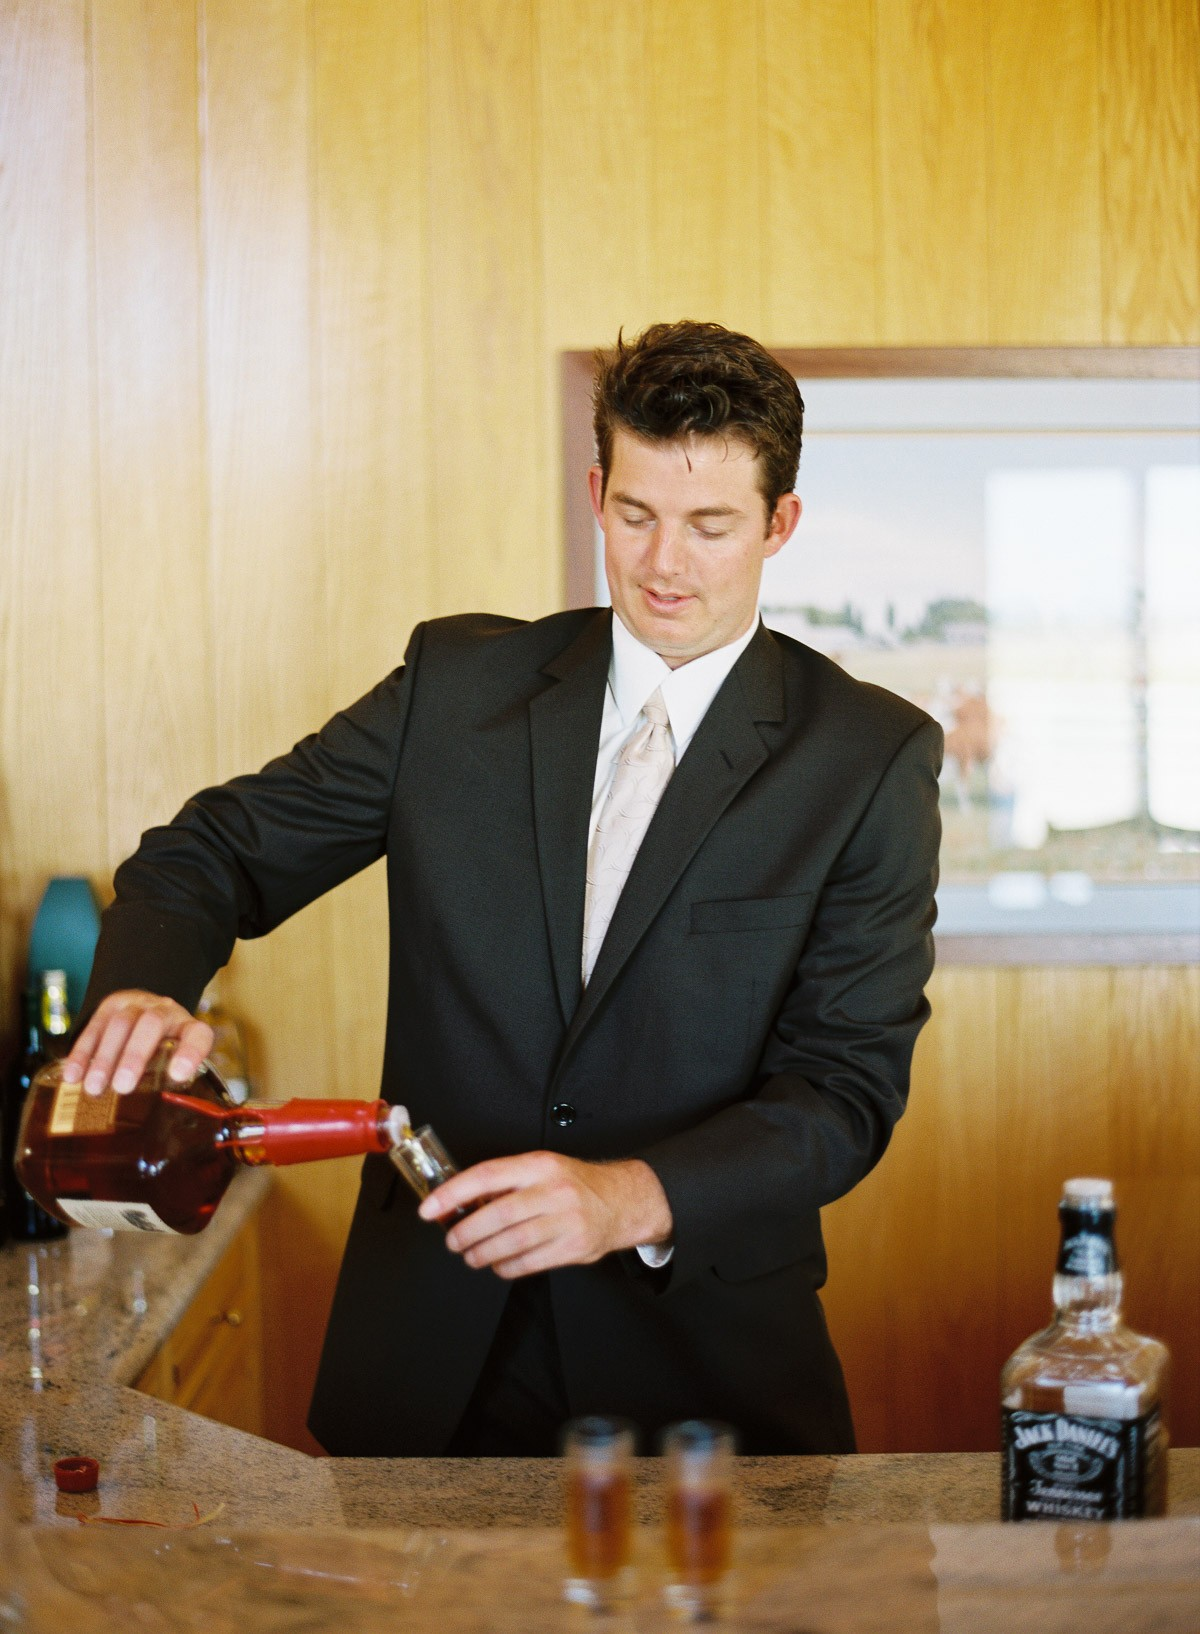 Groomsman pouring a drink